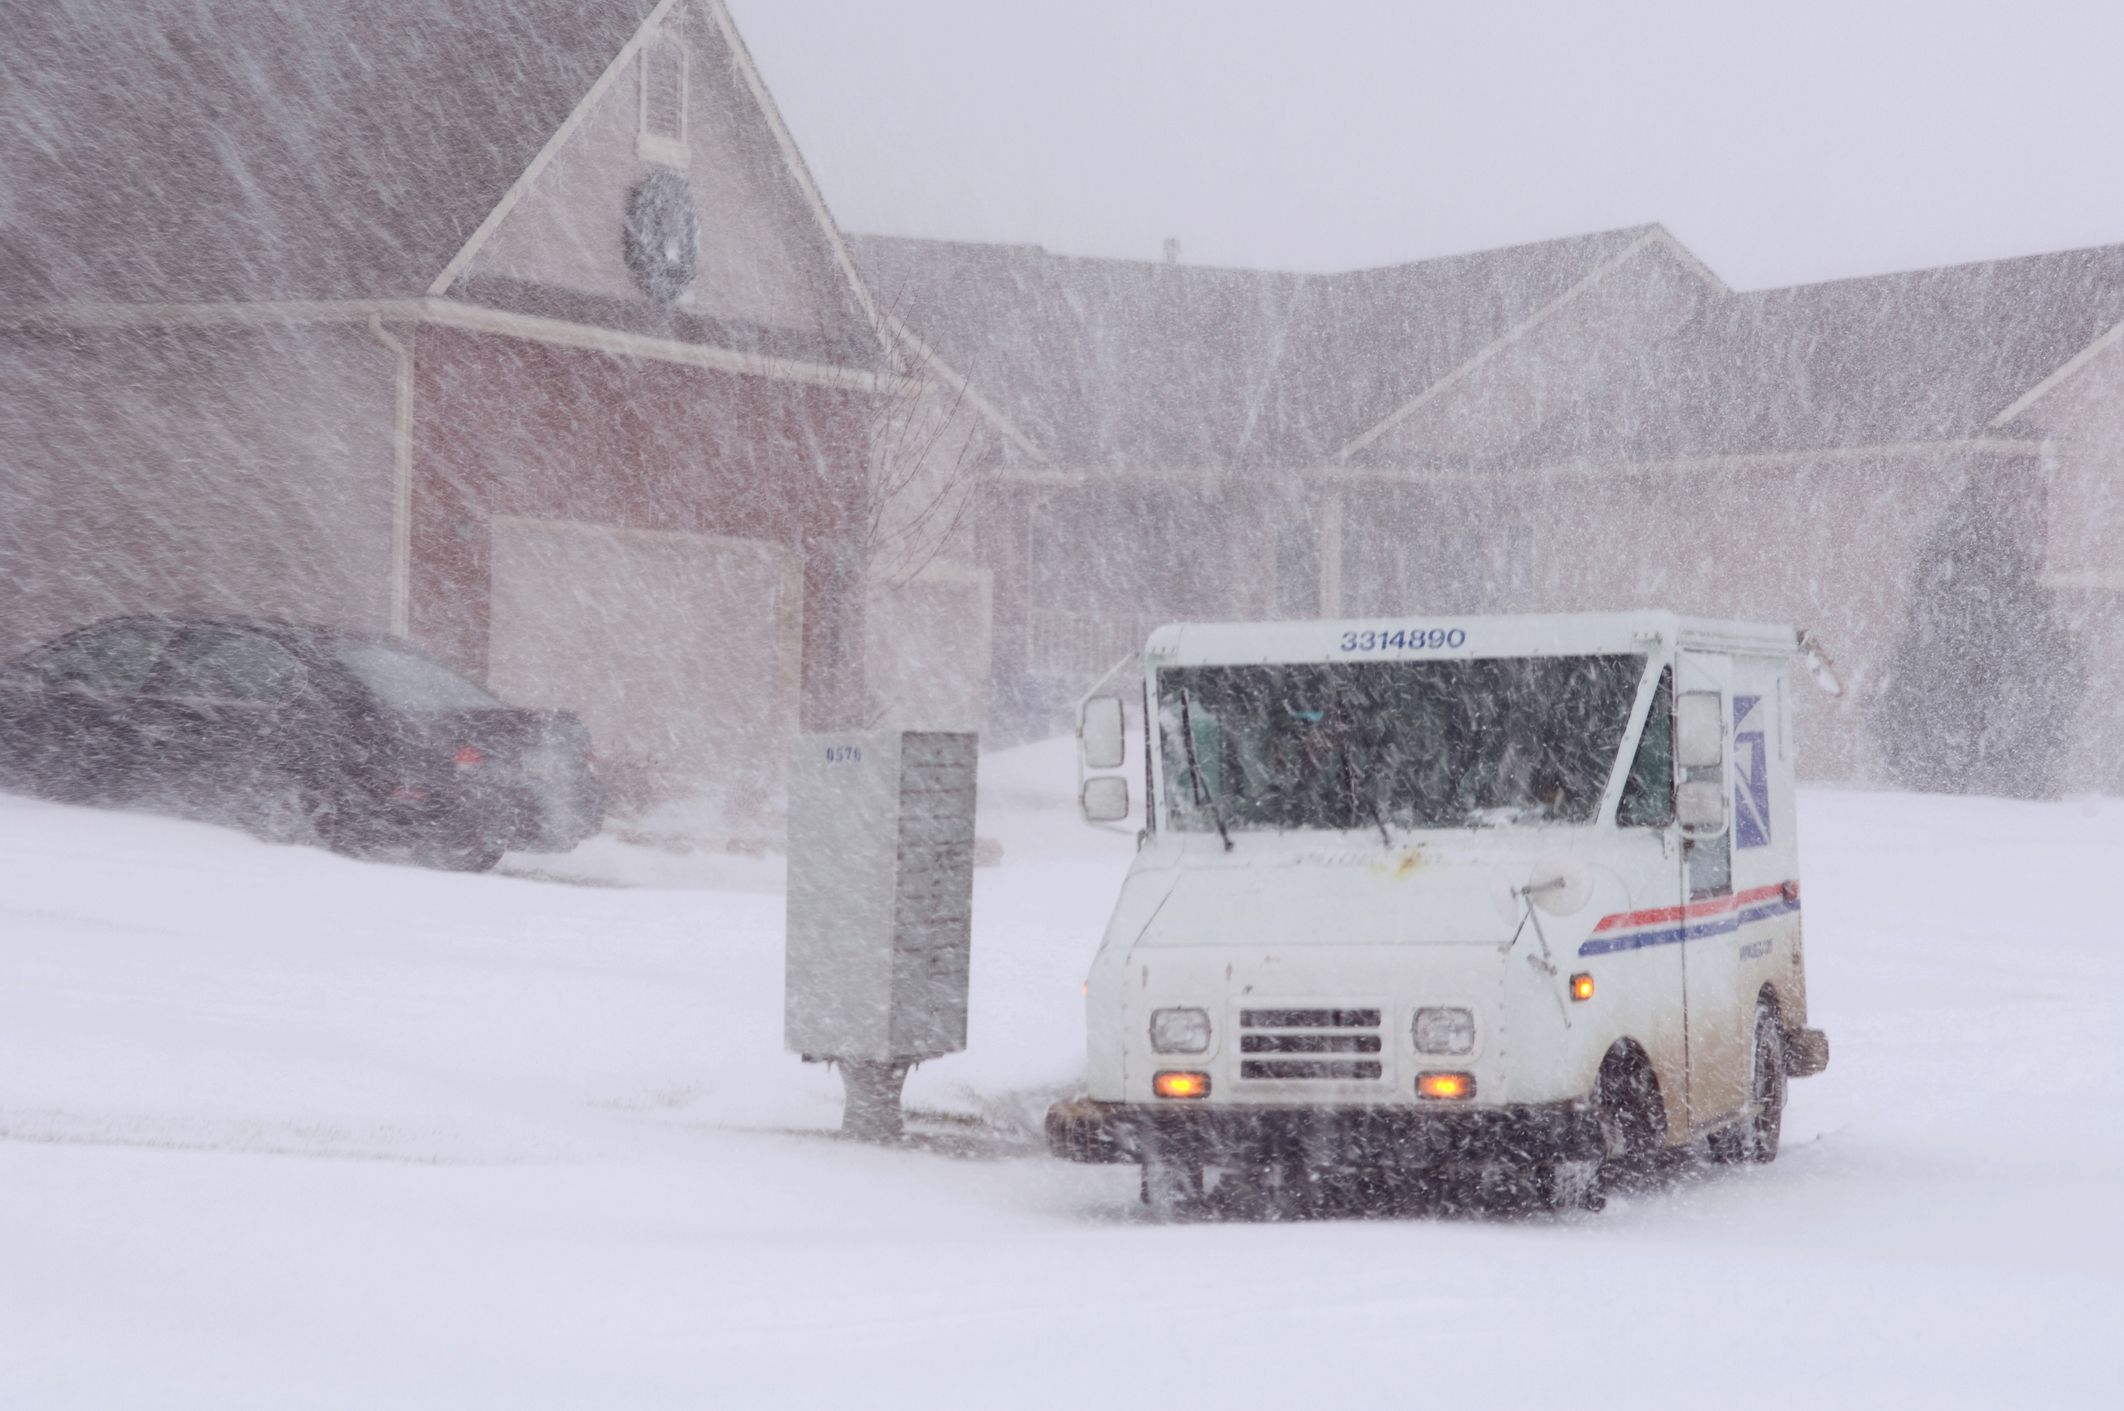 A U.S. Mail truck navigates a residential street during blizzard conditions in Wichita, Kansas on December 22, 2007.